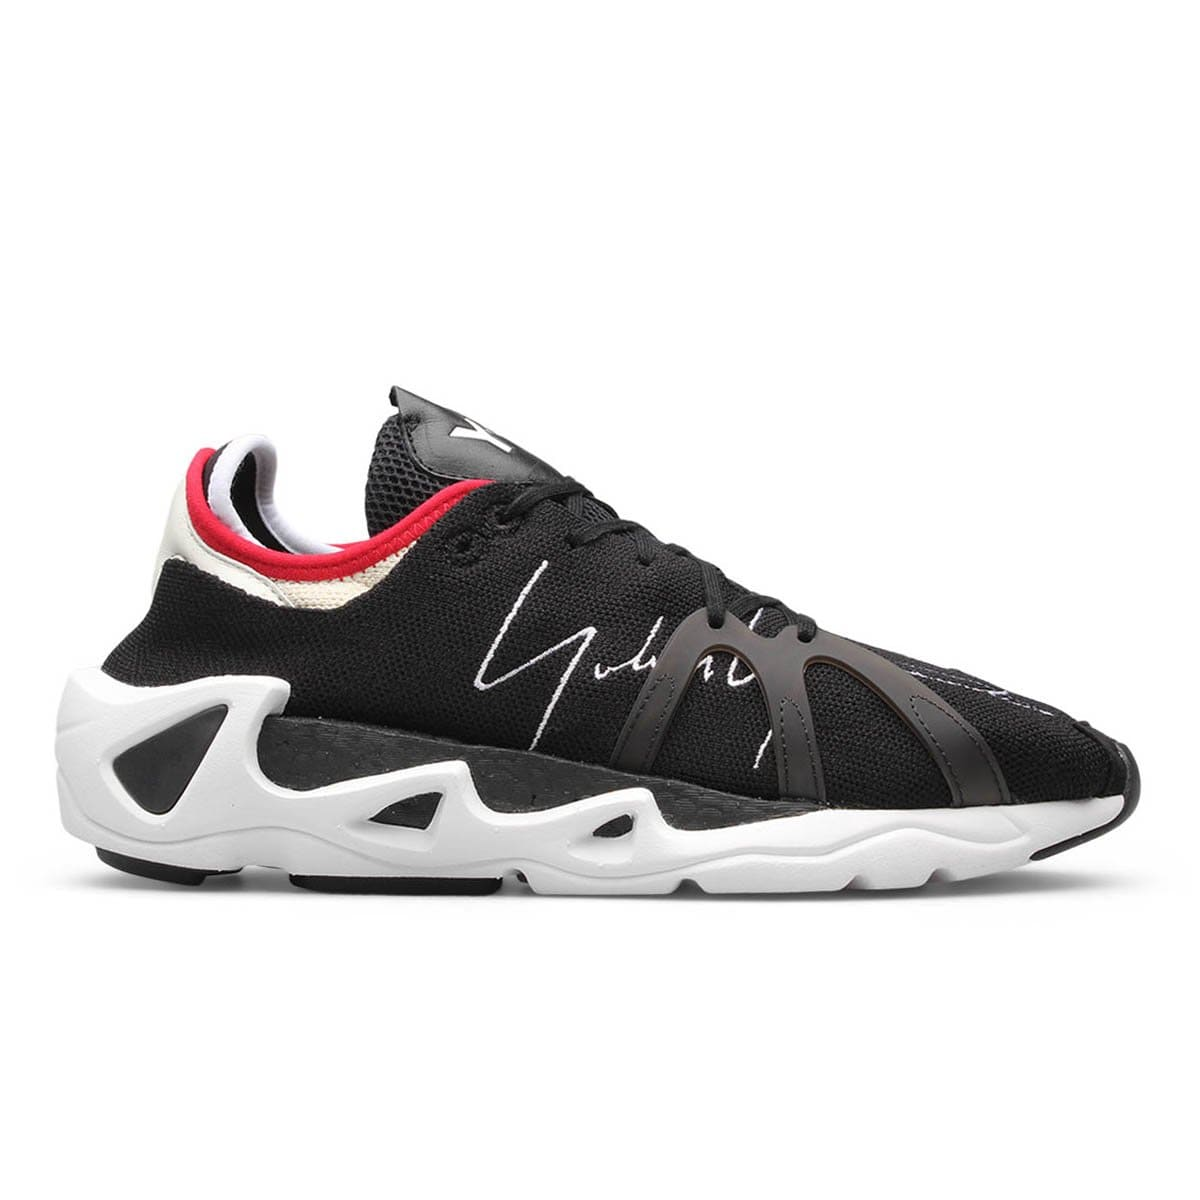 Adidas Y-3 Shoes Y-3 FYW S-97